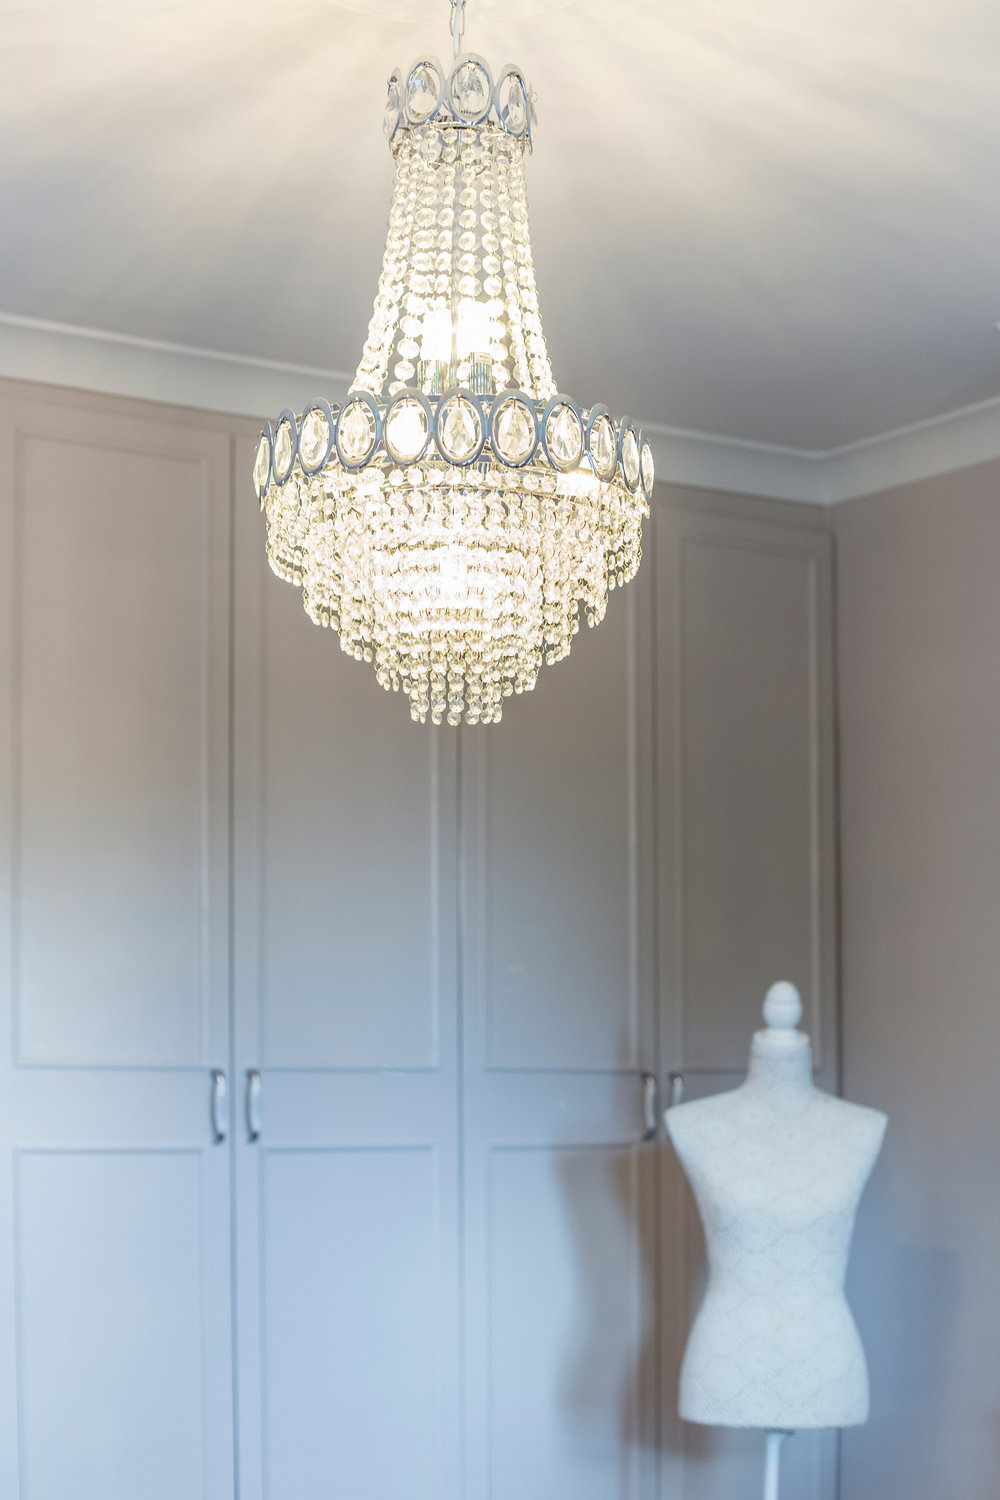 wimbledon-interior-design-chandelier.jpg